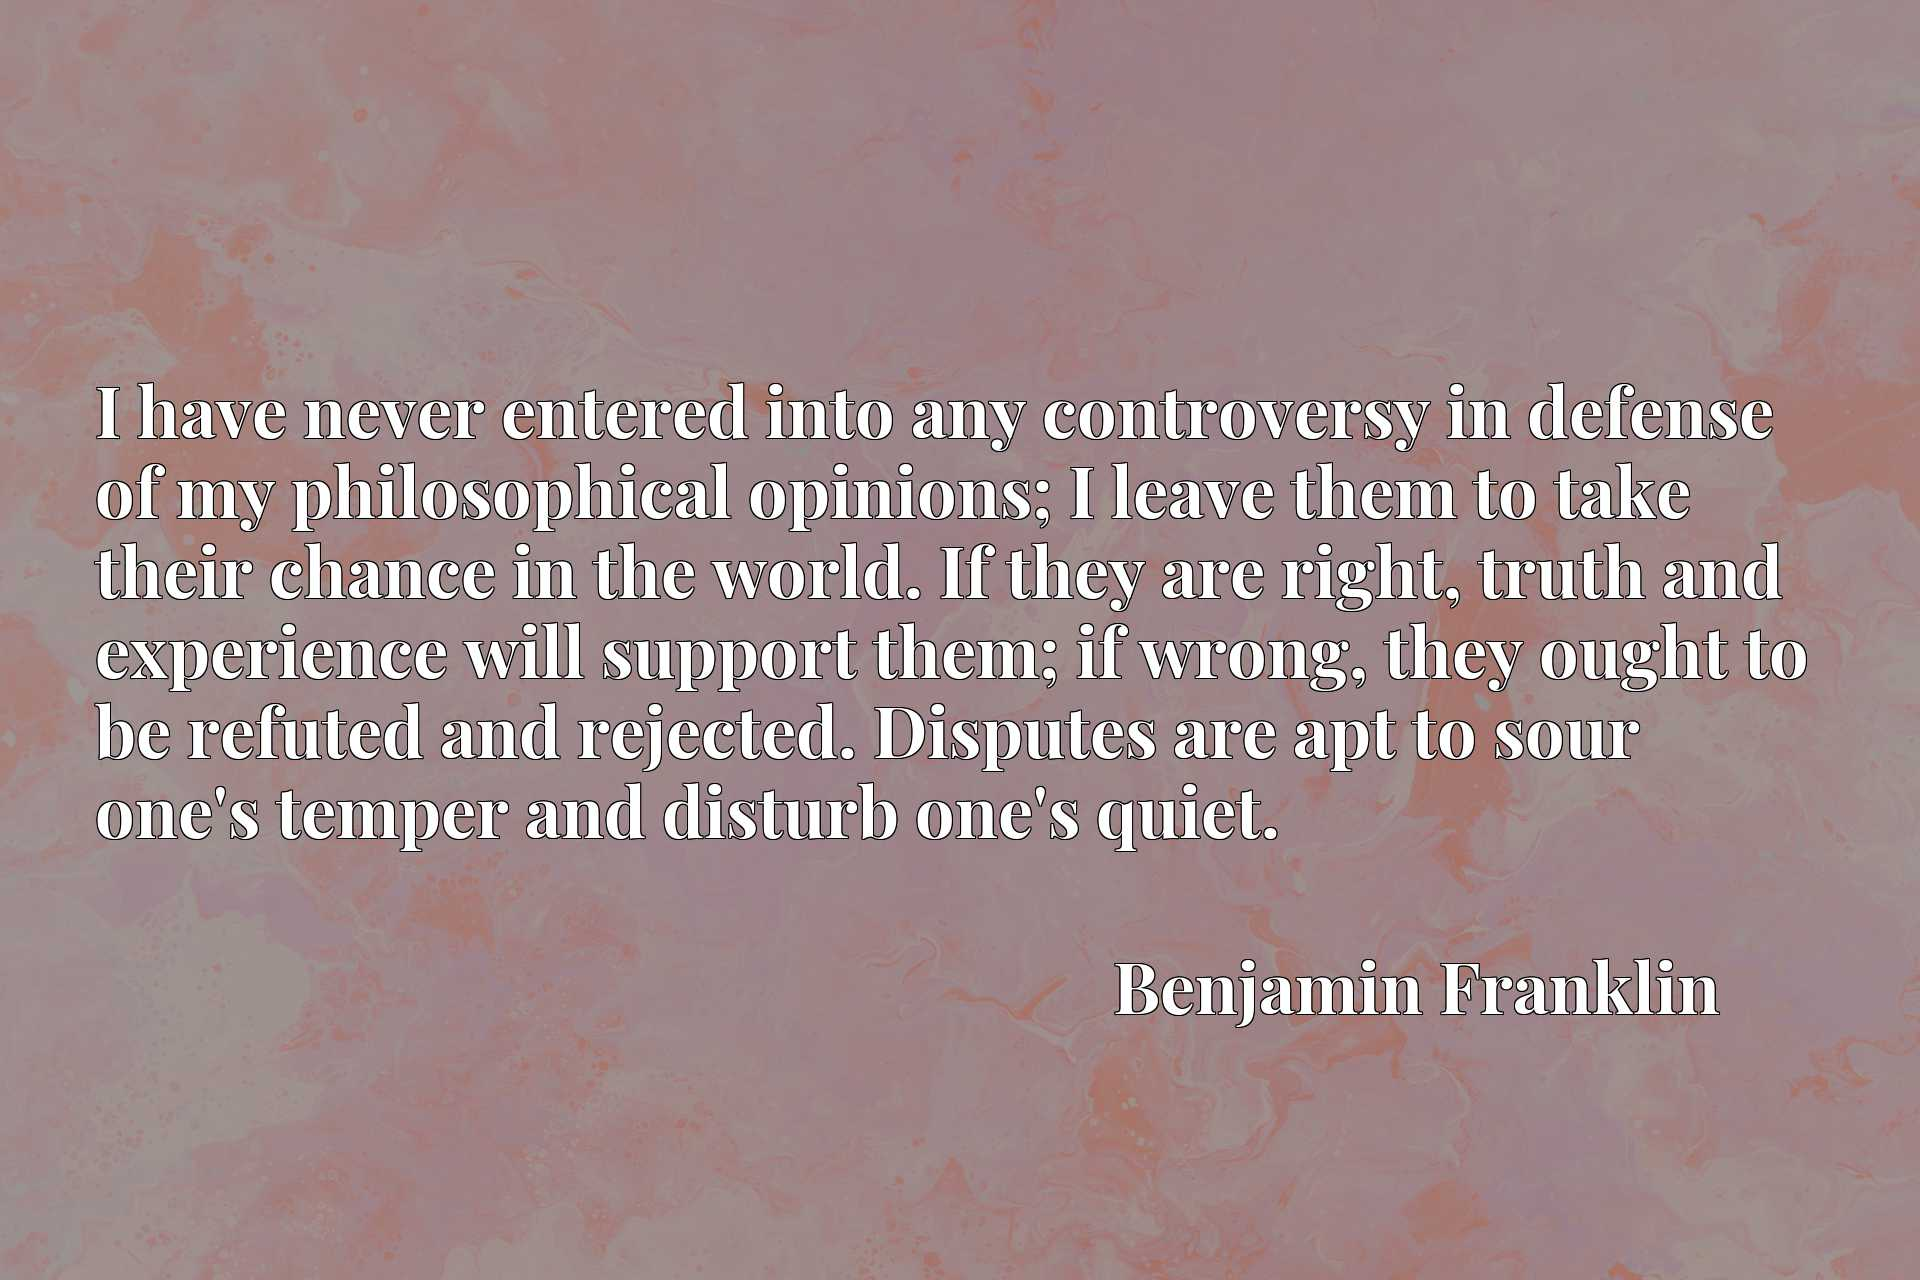 I have never entered into any controversy in defense of my philosophical opinions; I leave them to take their chance in the world. If they are right, truth and experience will support them; if wrong, they ought to be refuted and rejected. Disputes are apt to sour one's temper and disturb one's quiet.